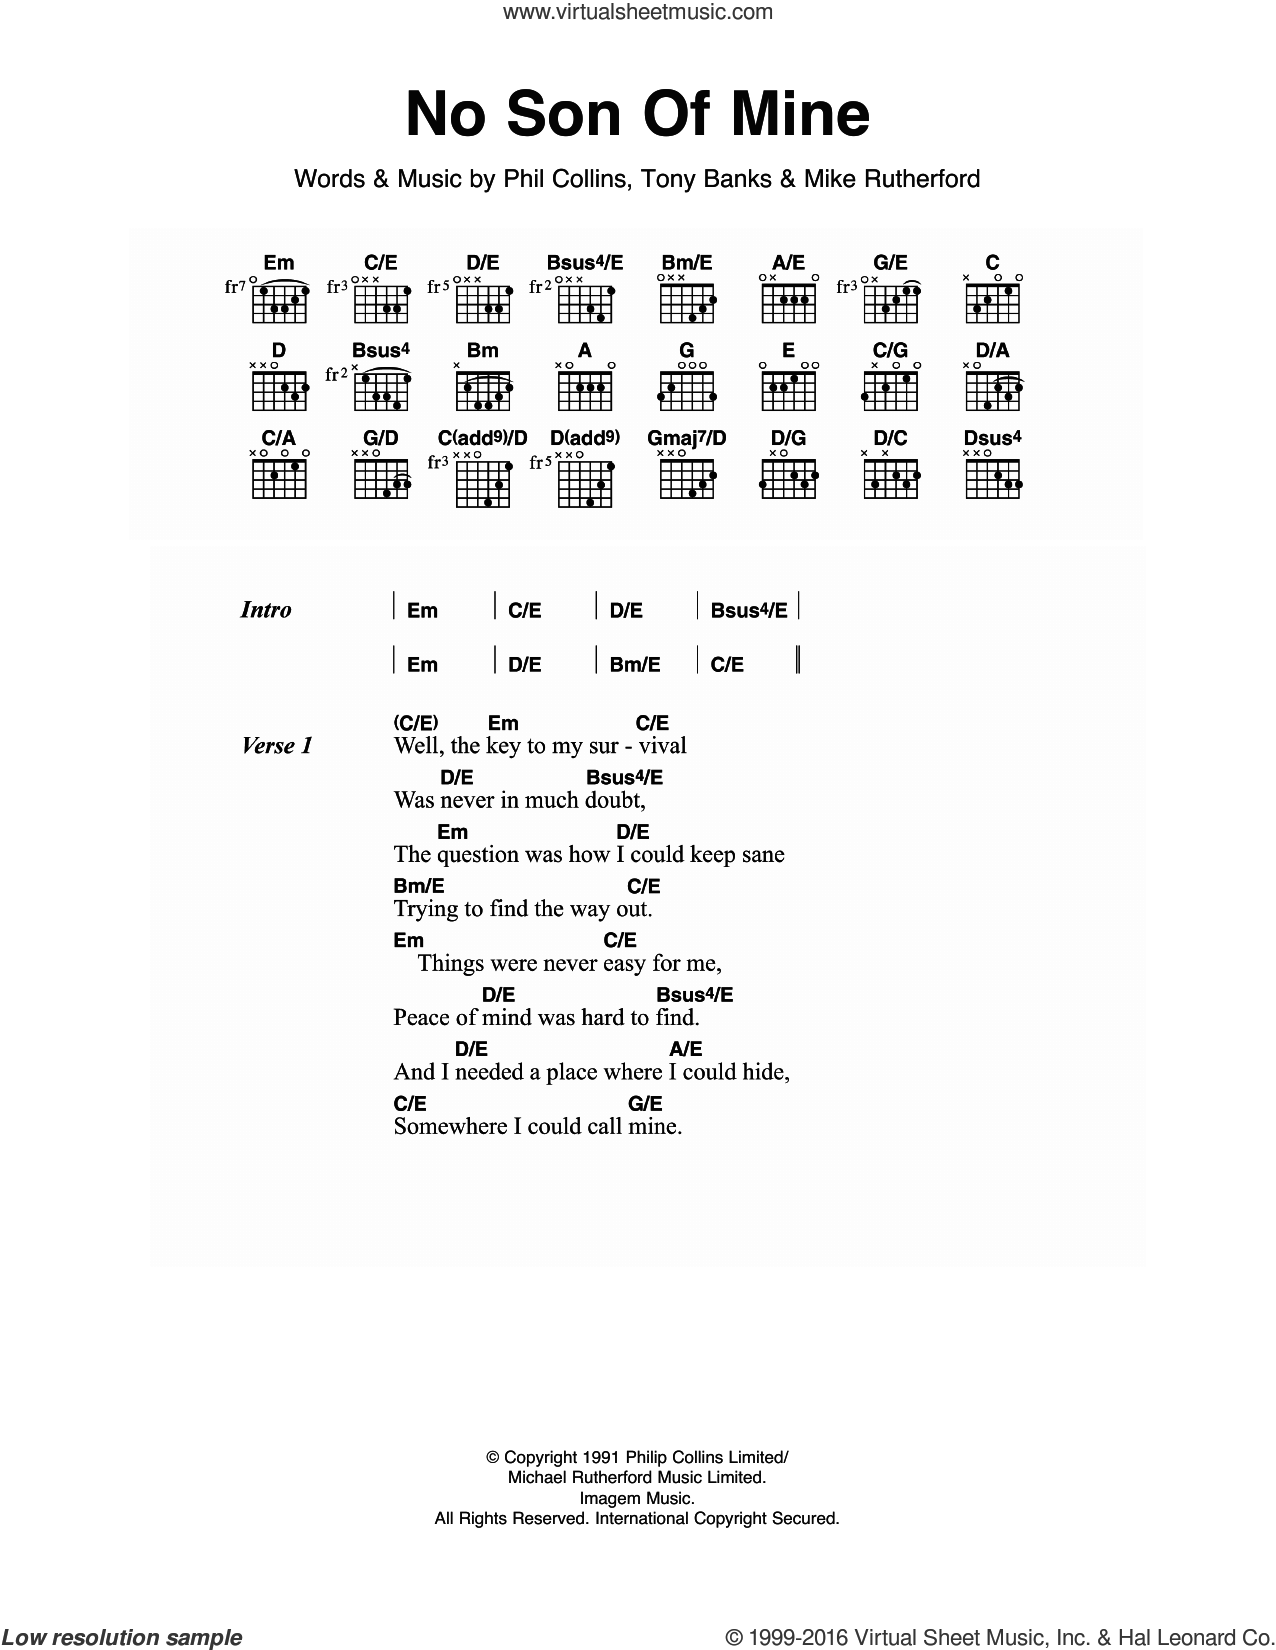 No Son Of Mine sheet music for guitar (chords) by Tony Banks, Genesis, Mike Rutherford and Phil Collins. Score Image Preview.